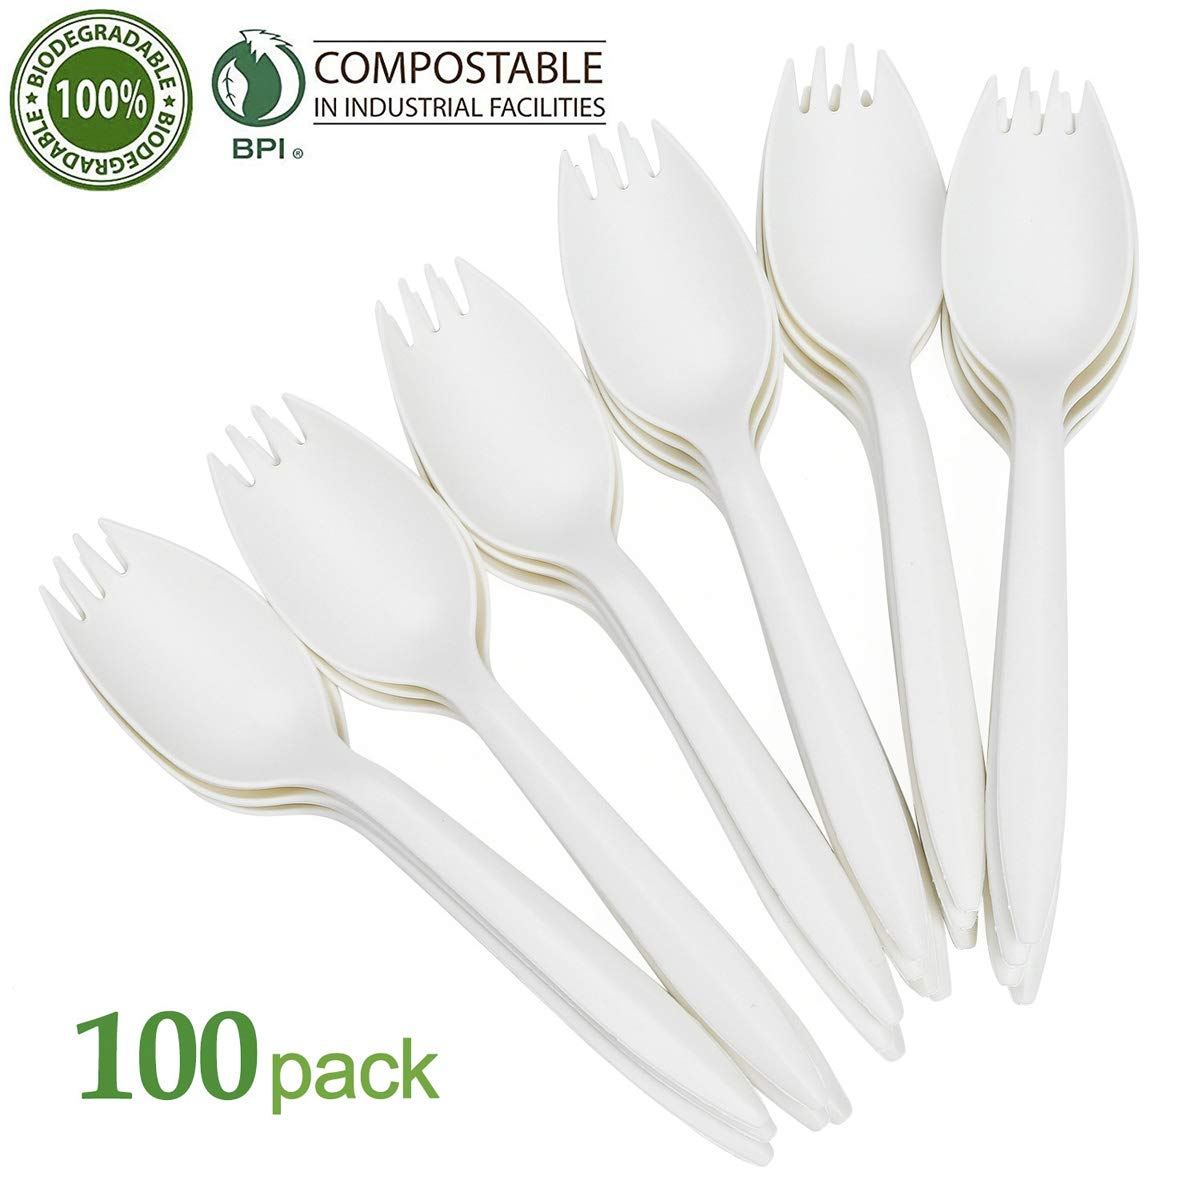 100 PCS Plastic Spork Plastic Forks and Spoons Disposable 2 in 1 Sporks Plastic Disposable Sporks for Camping Picnics Parties and Weddings White